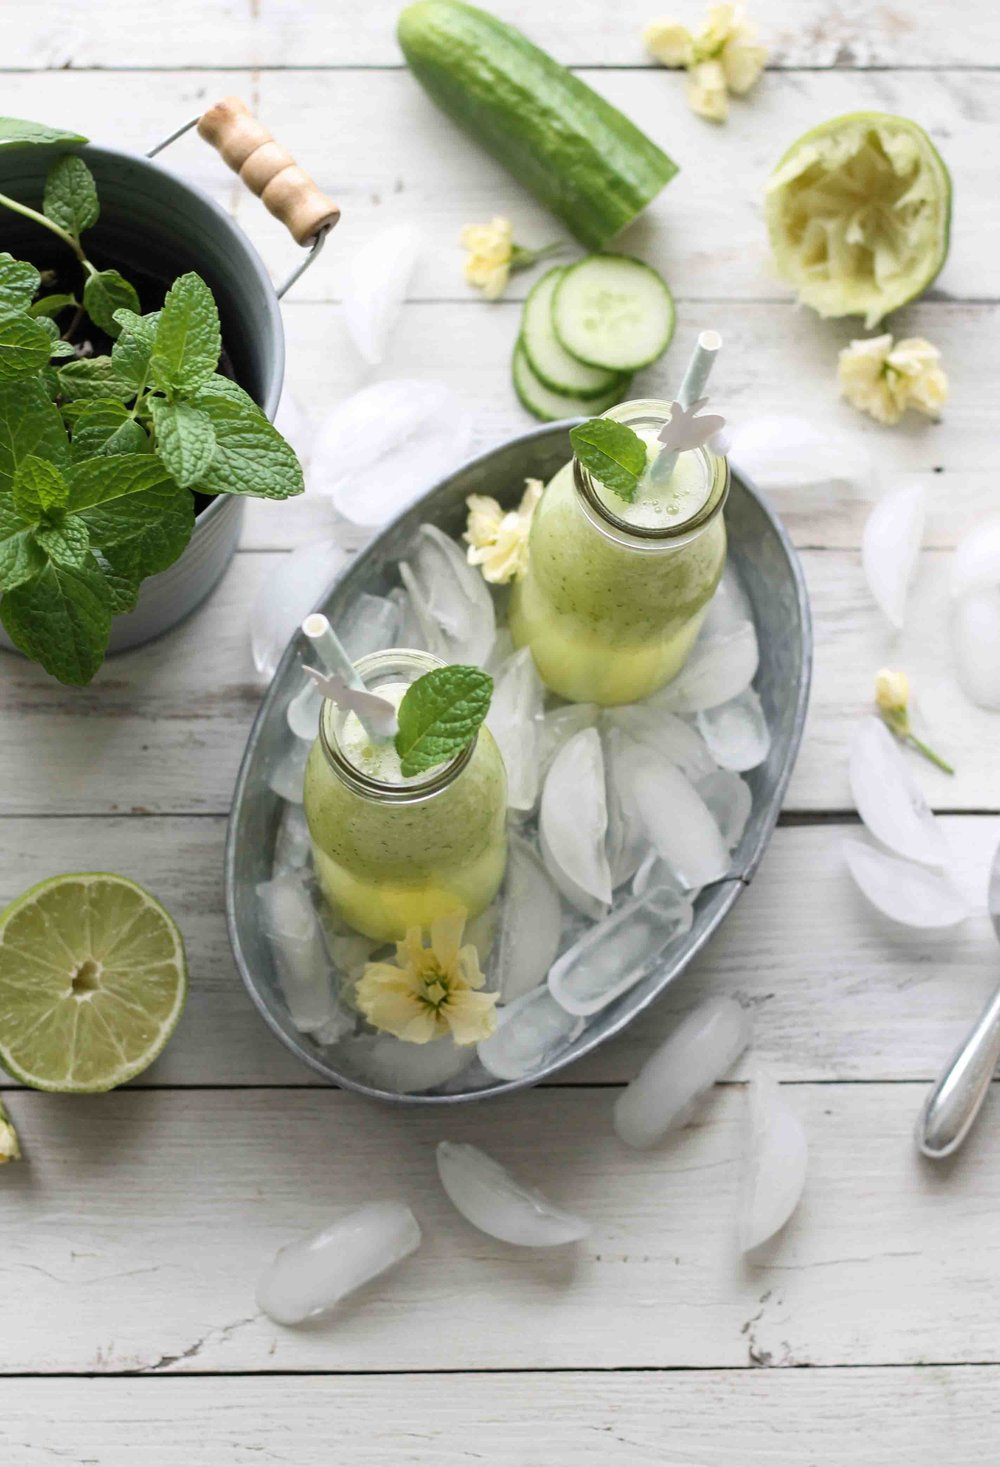 A simple agua fresca made with fresh pineapple, fragrant mint, sweet cucumbers, and brightened with lime.  The perfect springtime tonic!